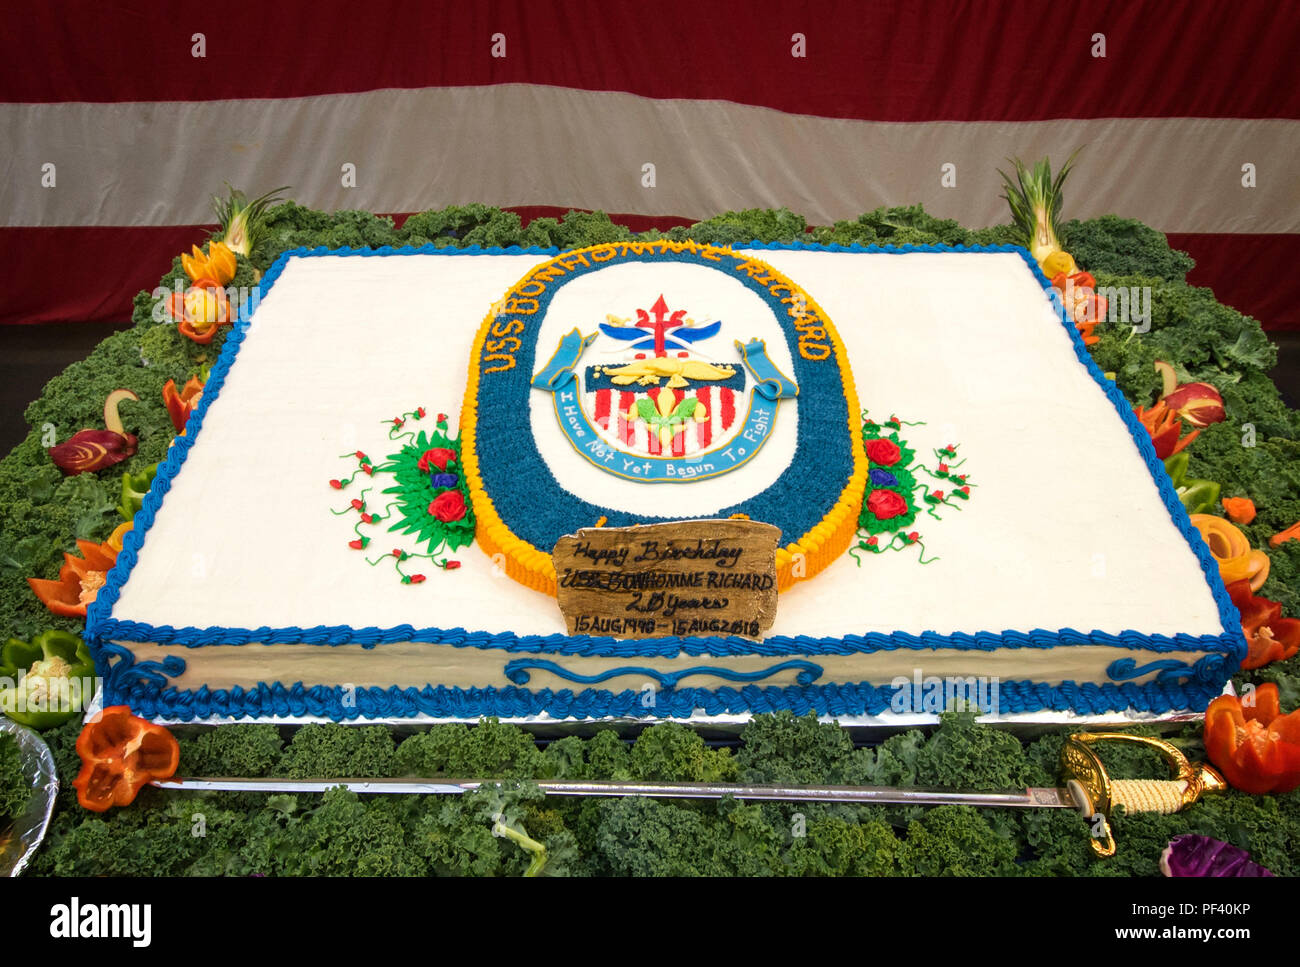 180816 N WF272 1002 SAN DIEGO Aug 16 2018 A Ceremonial Birthday Cake Is Set Up In The Hangar Bay Of Amphibious Assault Ship USS Bonhomme Richard